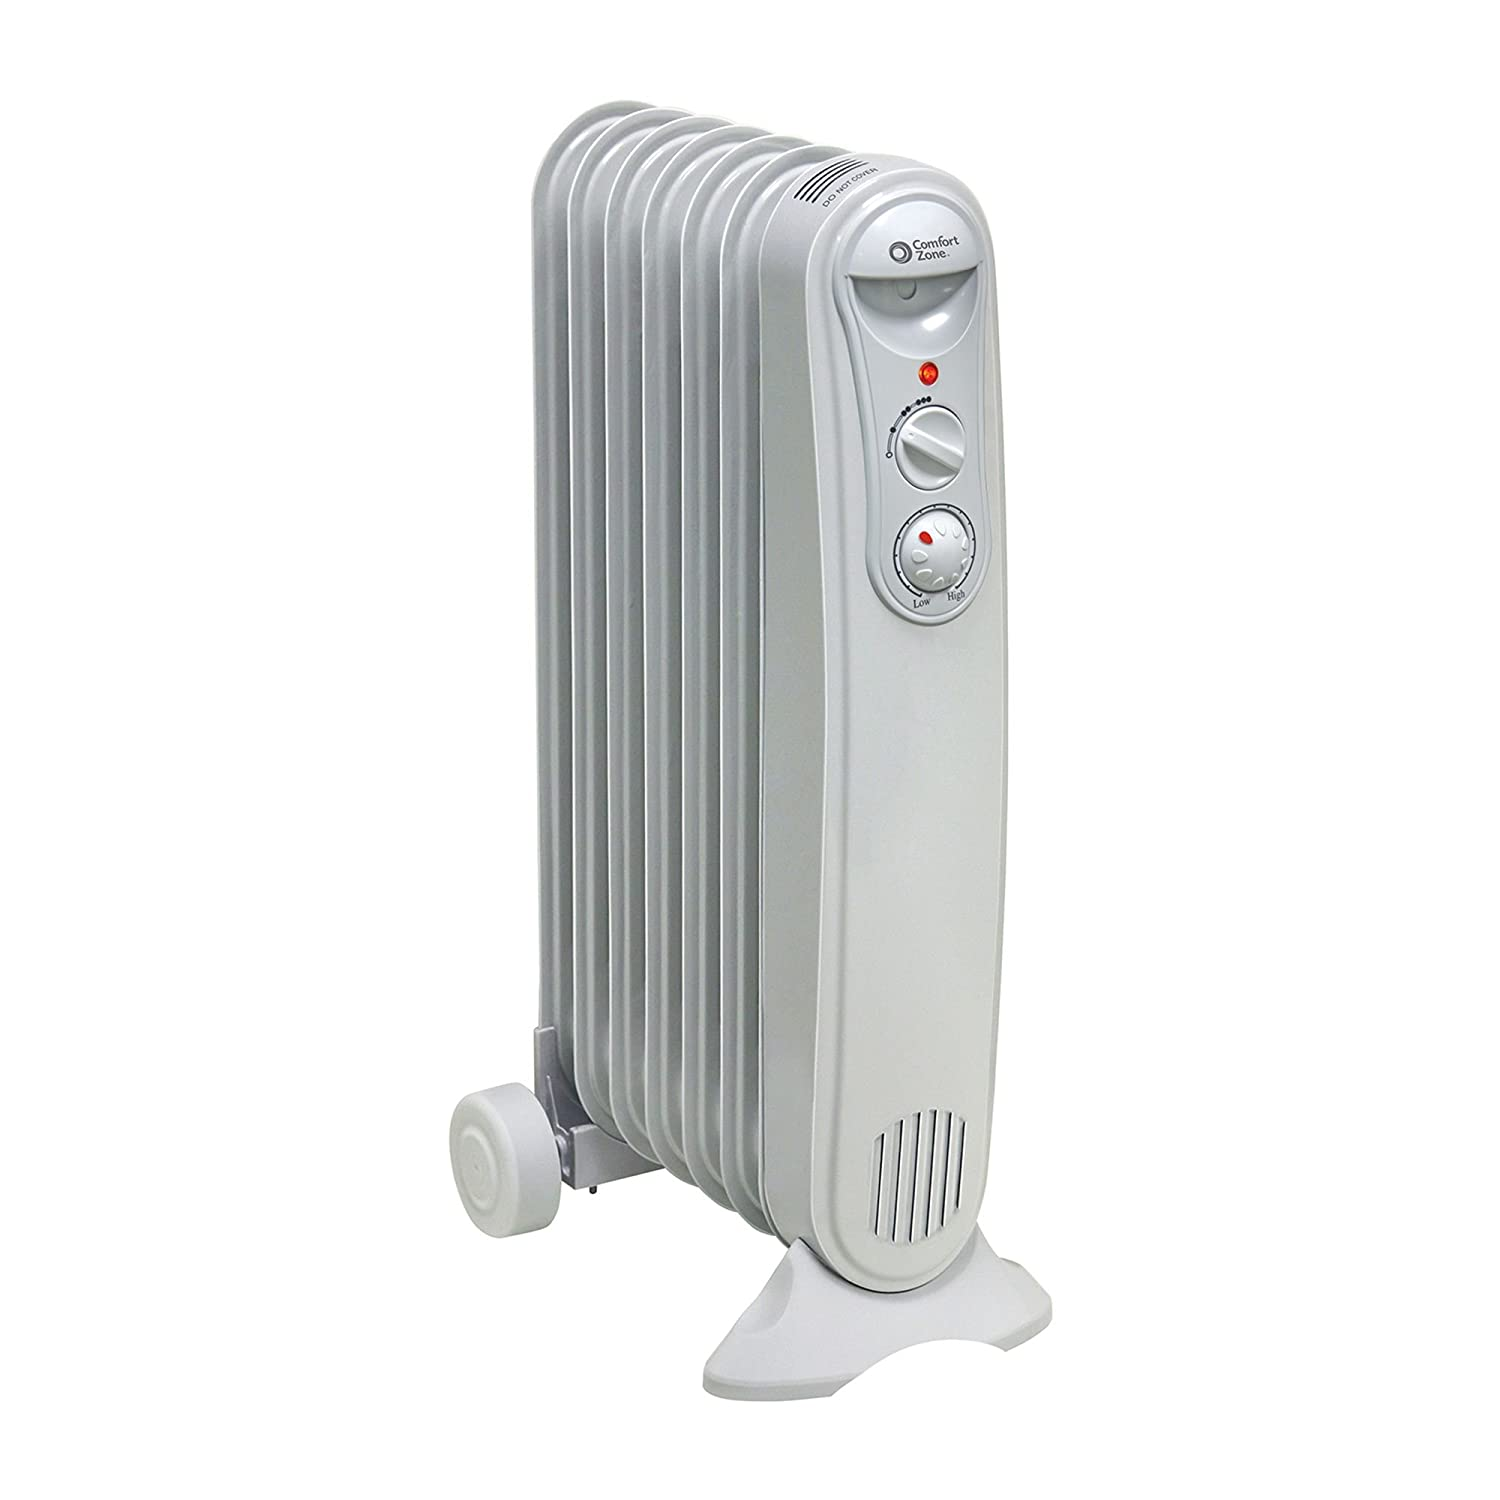 5e915b05e78 Amazon.com  Comfort Zone Oil-Filled Electric Radiator Heater